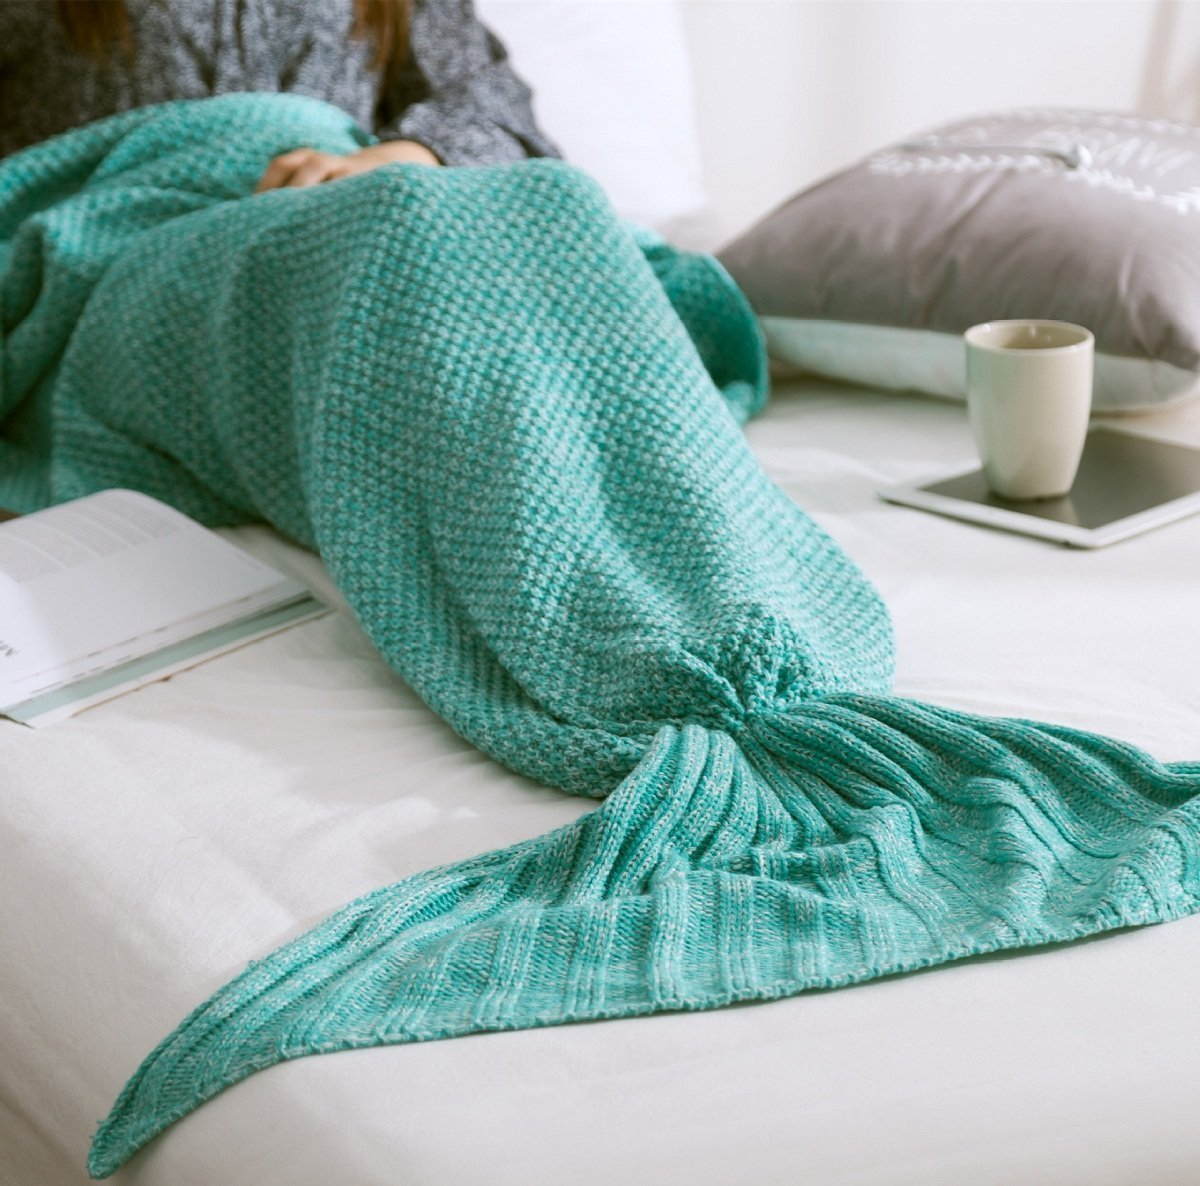 The Amazing Mermaid Blanket